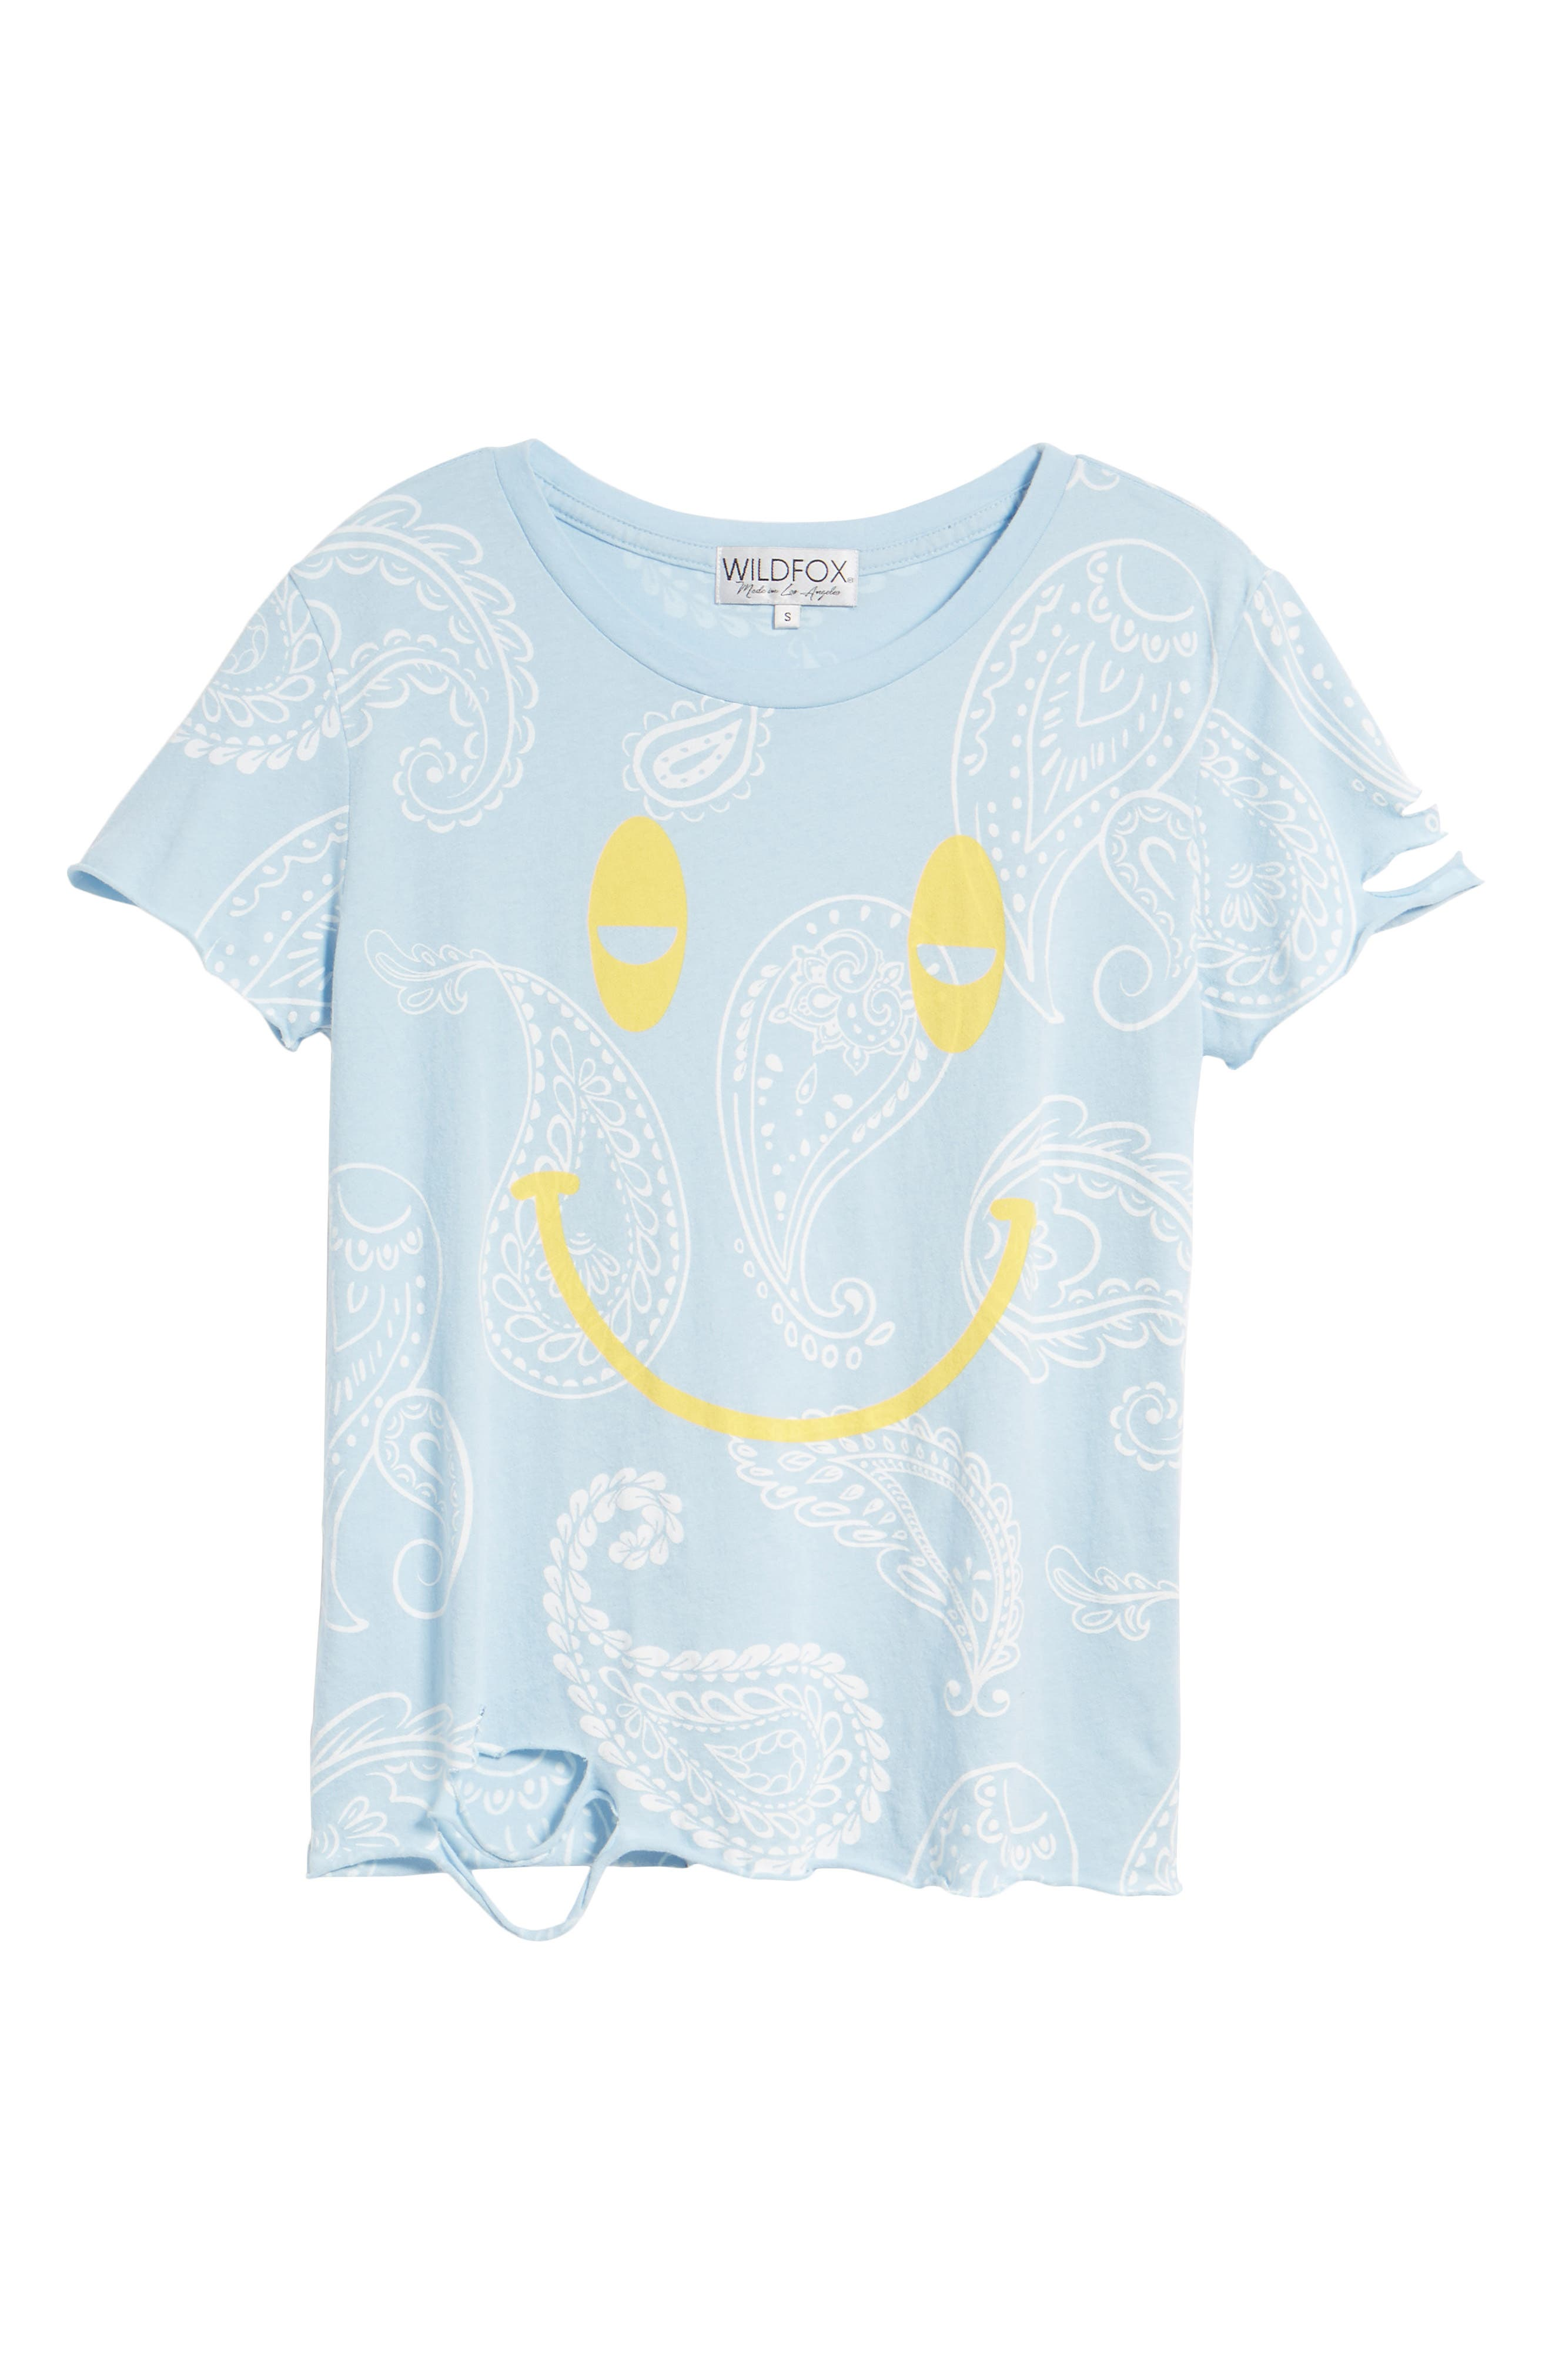 Sleepy Smiley Stellar Tee,                             Alternate thumbnail 7, color,                             460